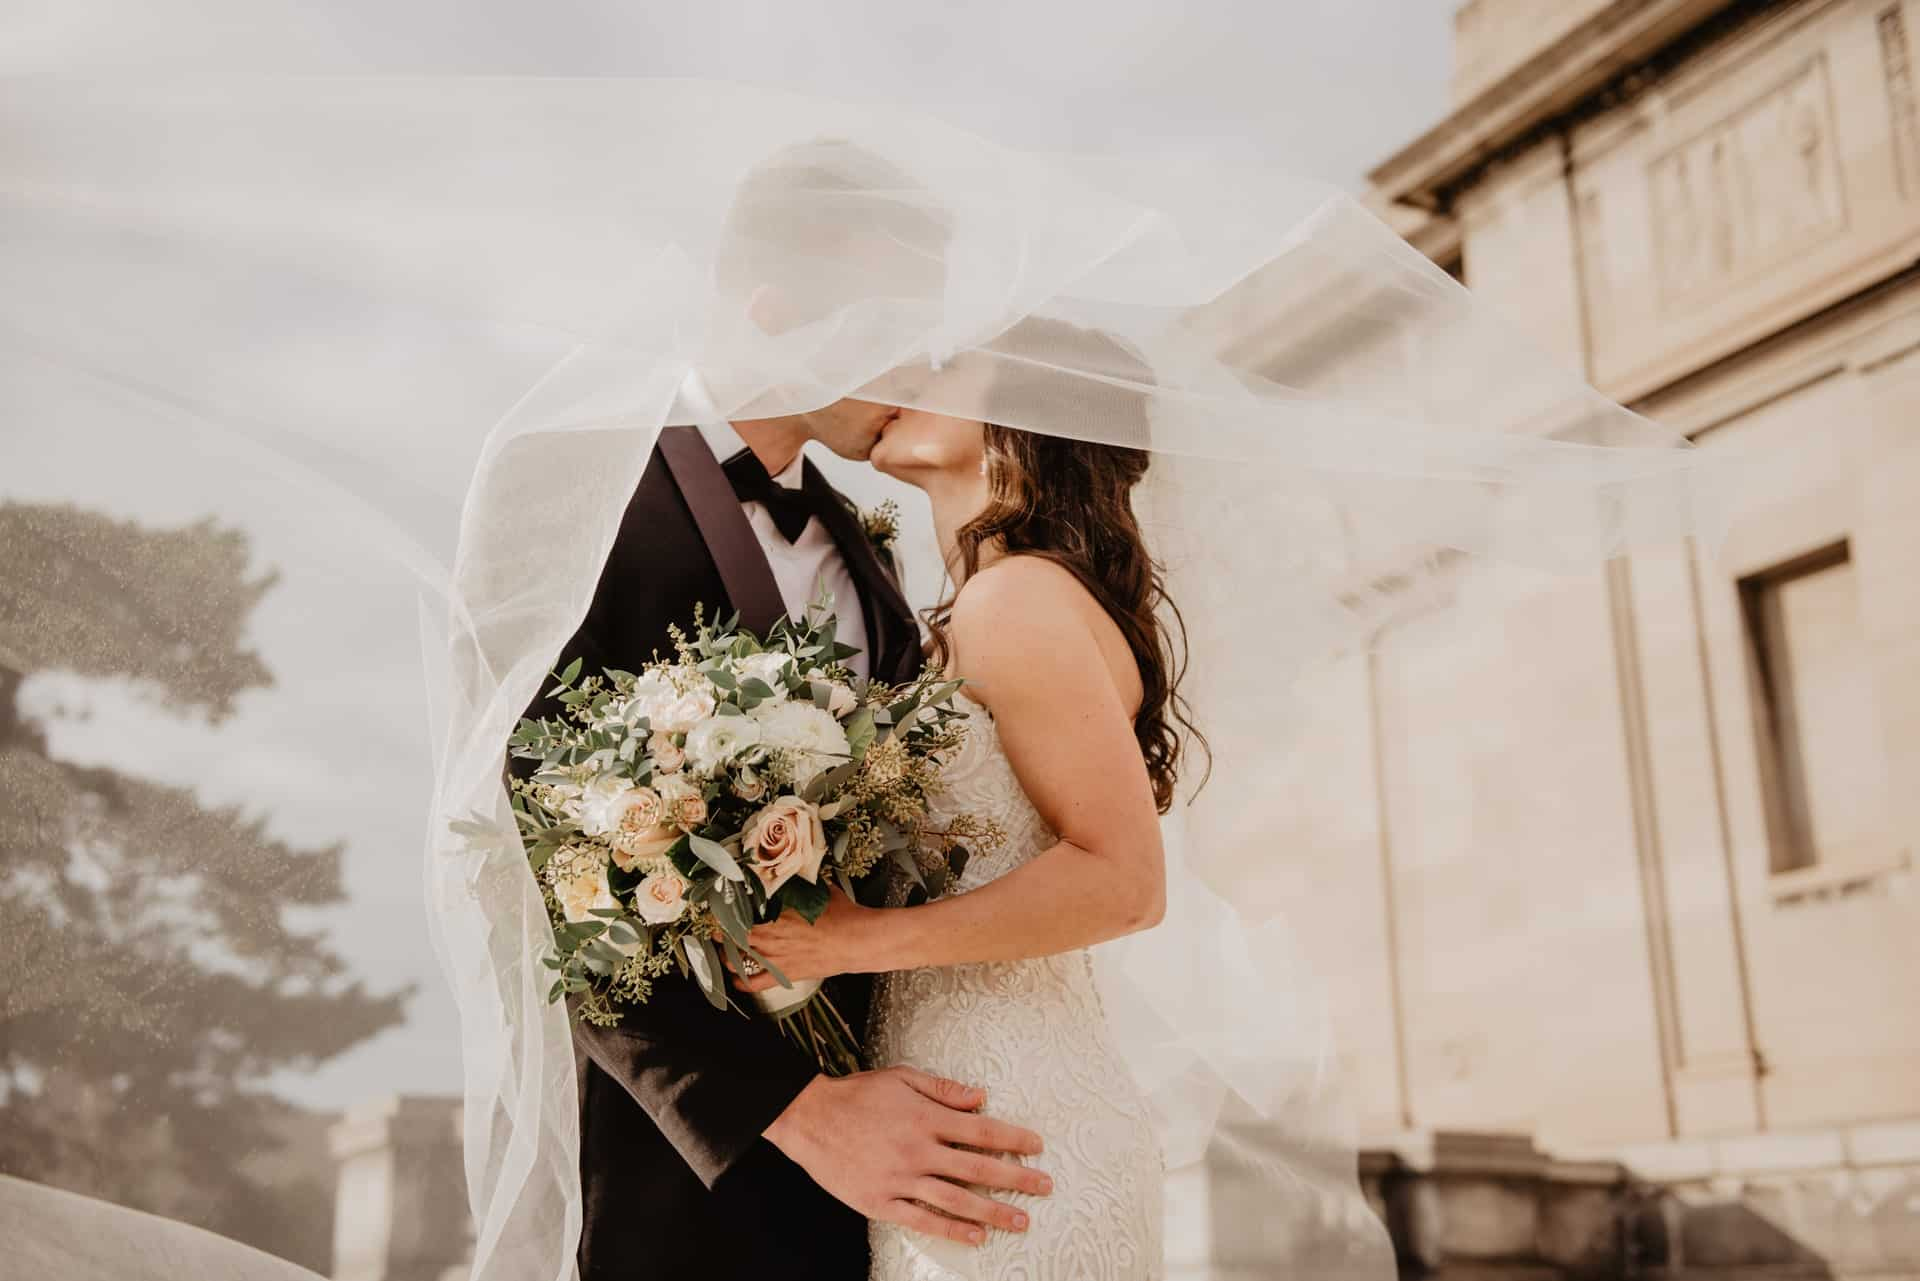 Choosing a video style for your wedding